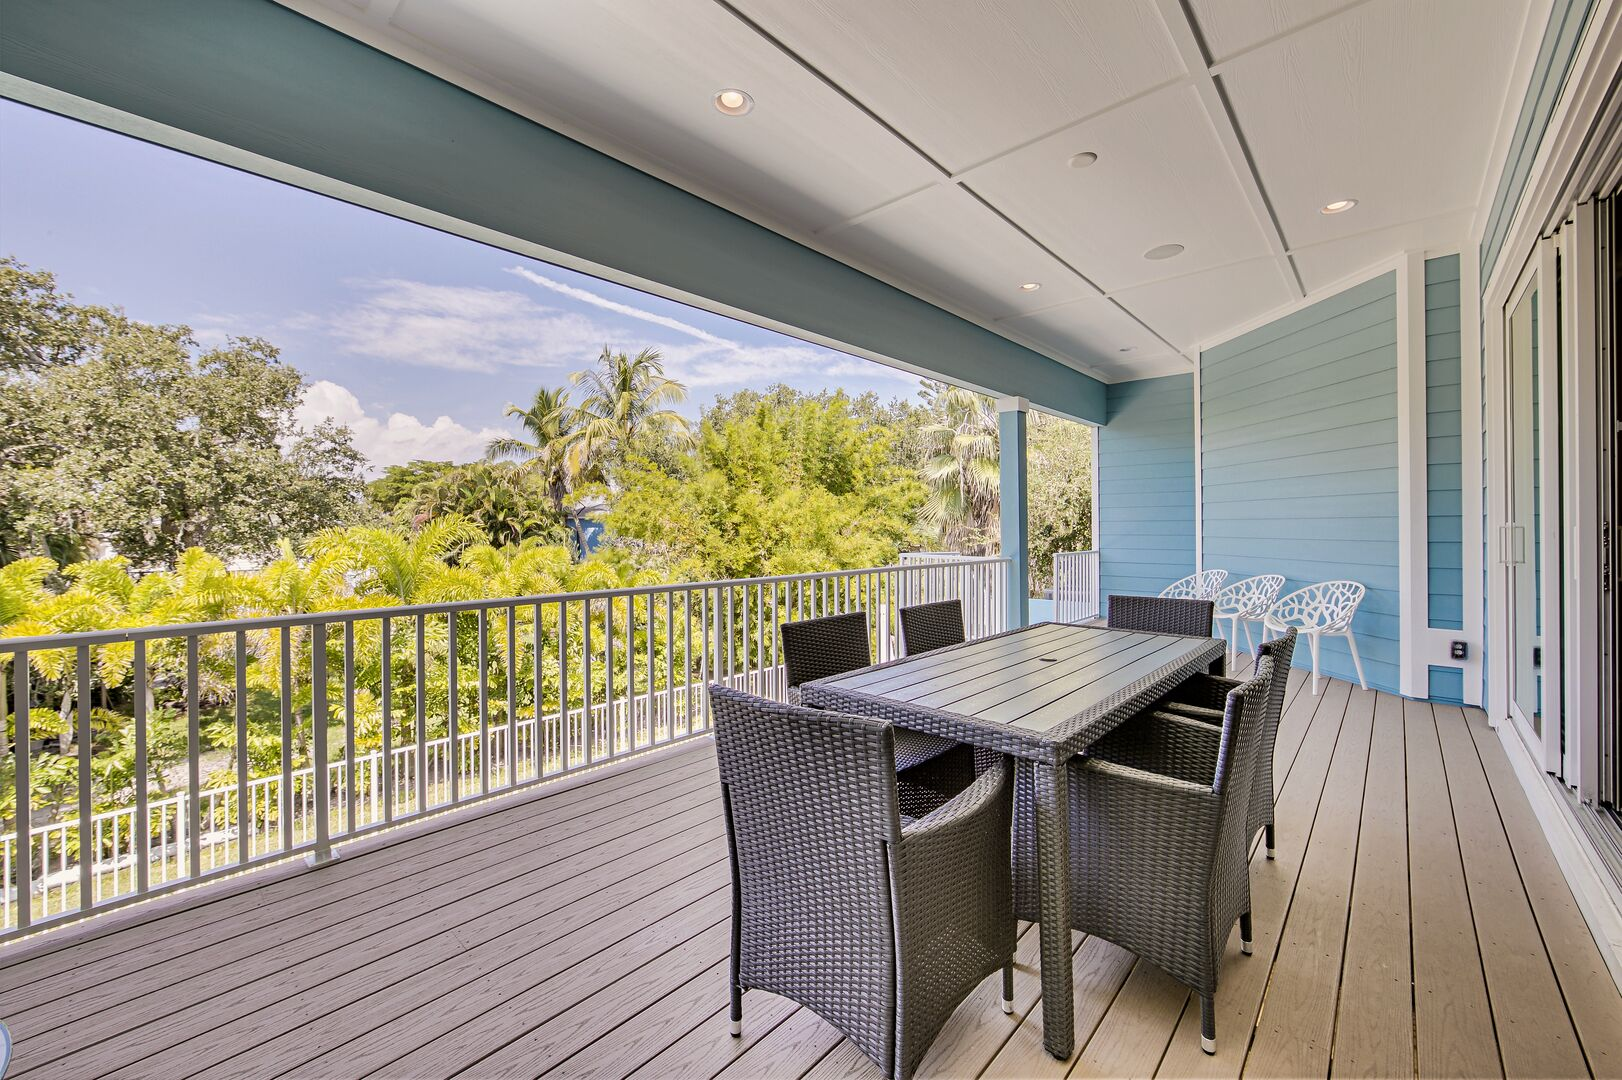 Seating for 6 on the deck of this vacation rental near Fort Myers Beach